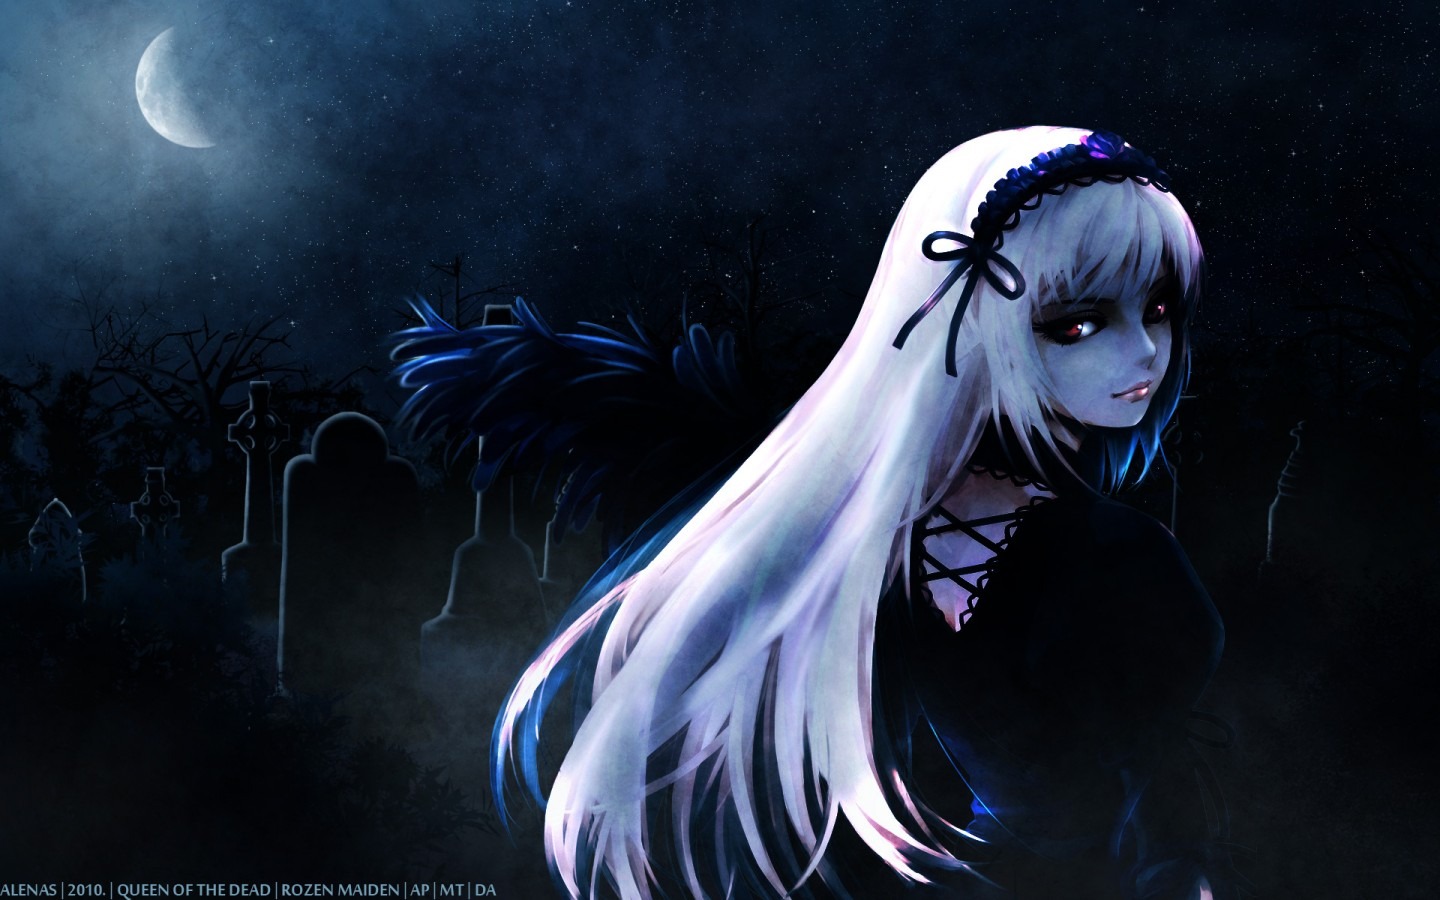 46 dark anime wallpaper hd on wallpapersafari - Dark anime background ...